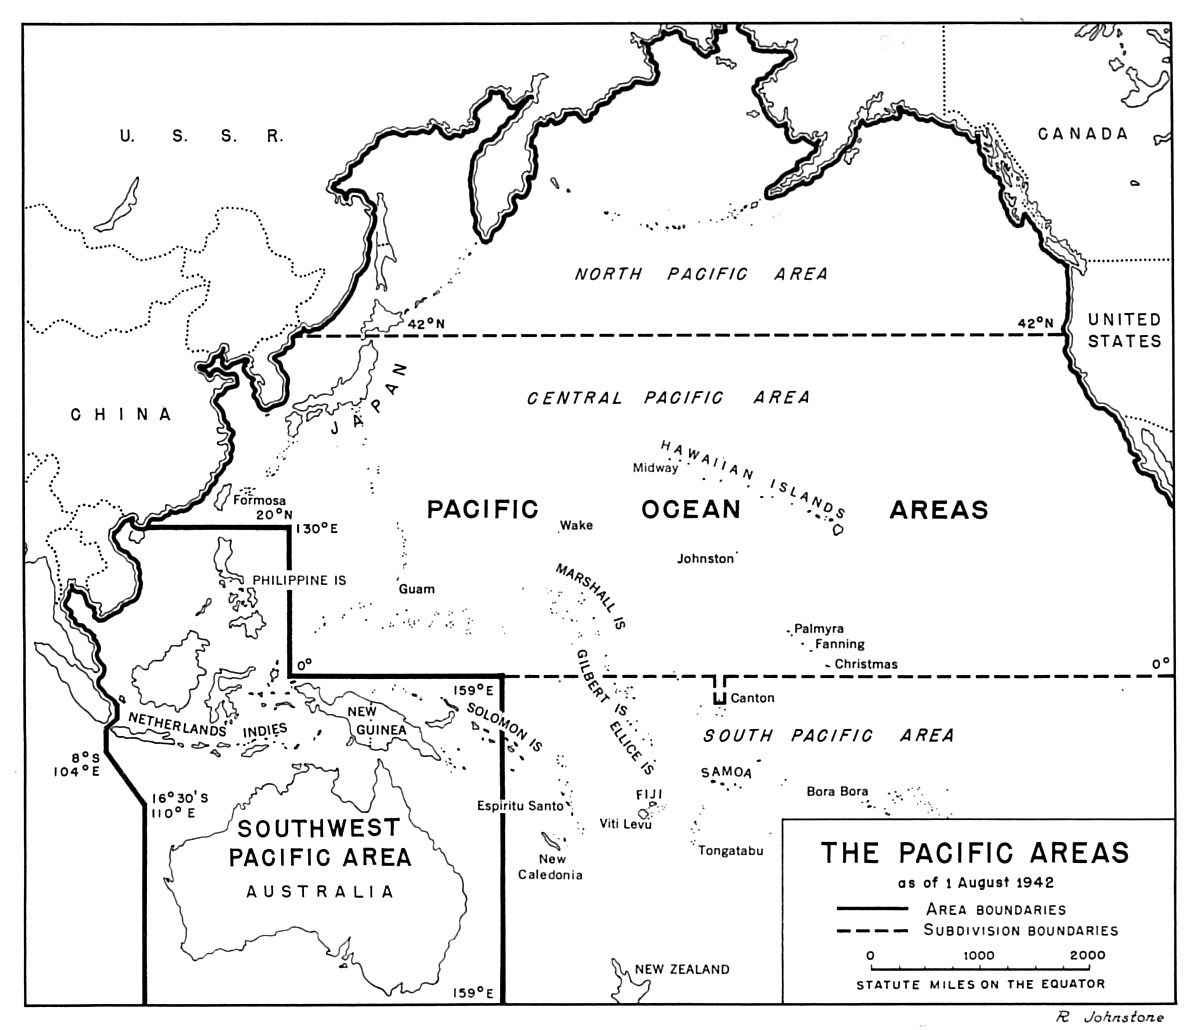 opinions on pacific ocean areas command